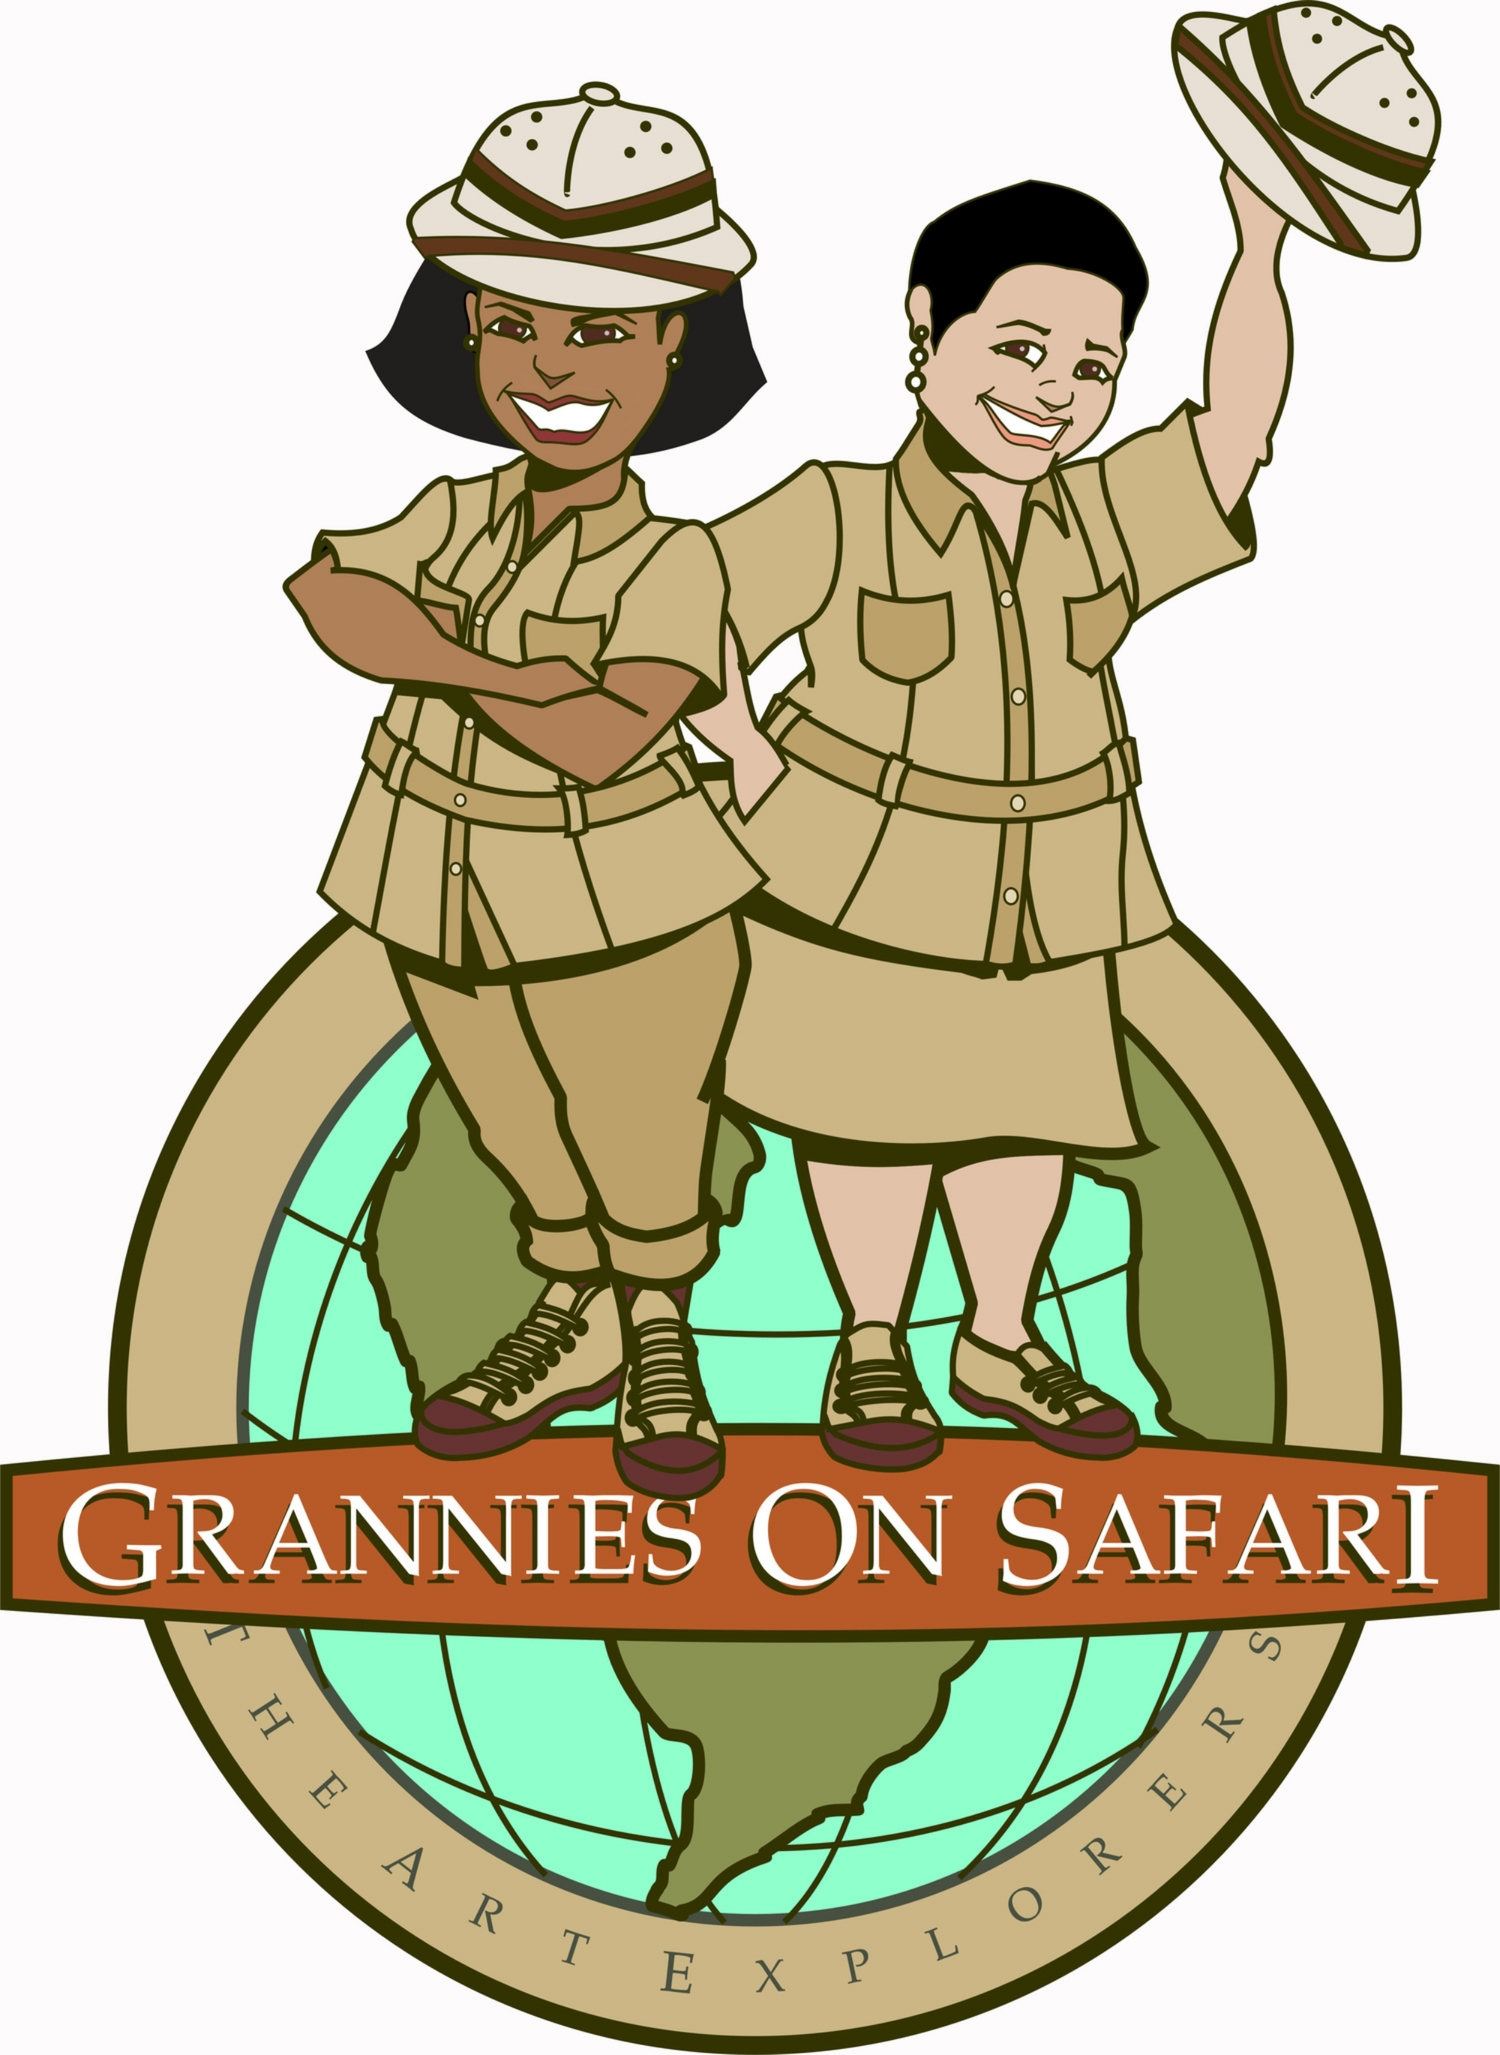 Grannies on Safari